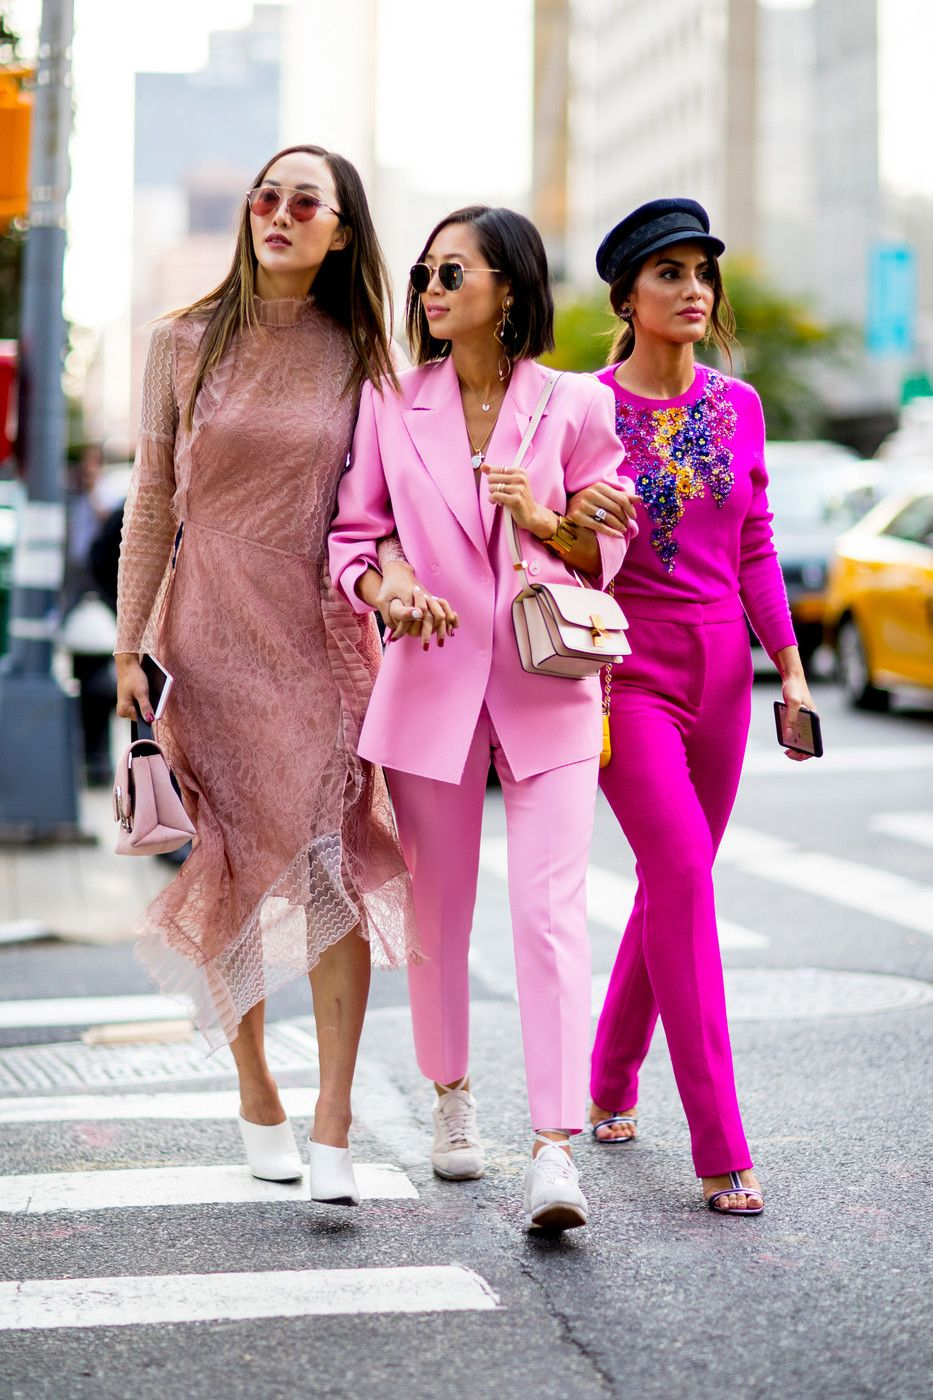 Pink Ladies | Cool street fashion, New york fashion week street ...